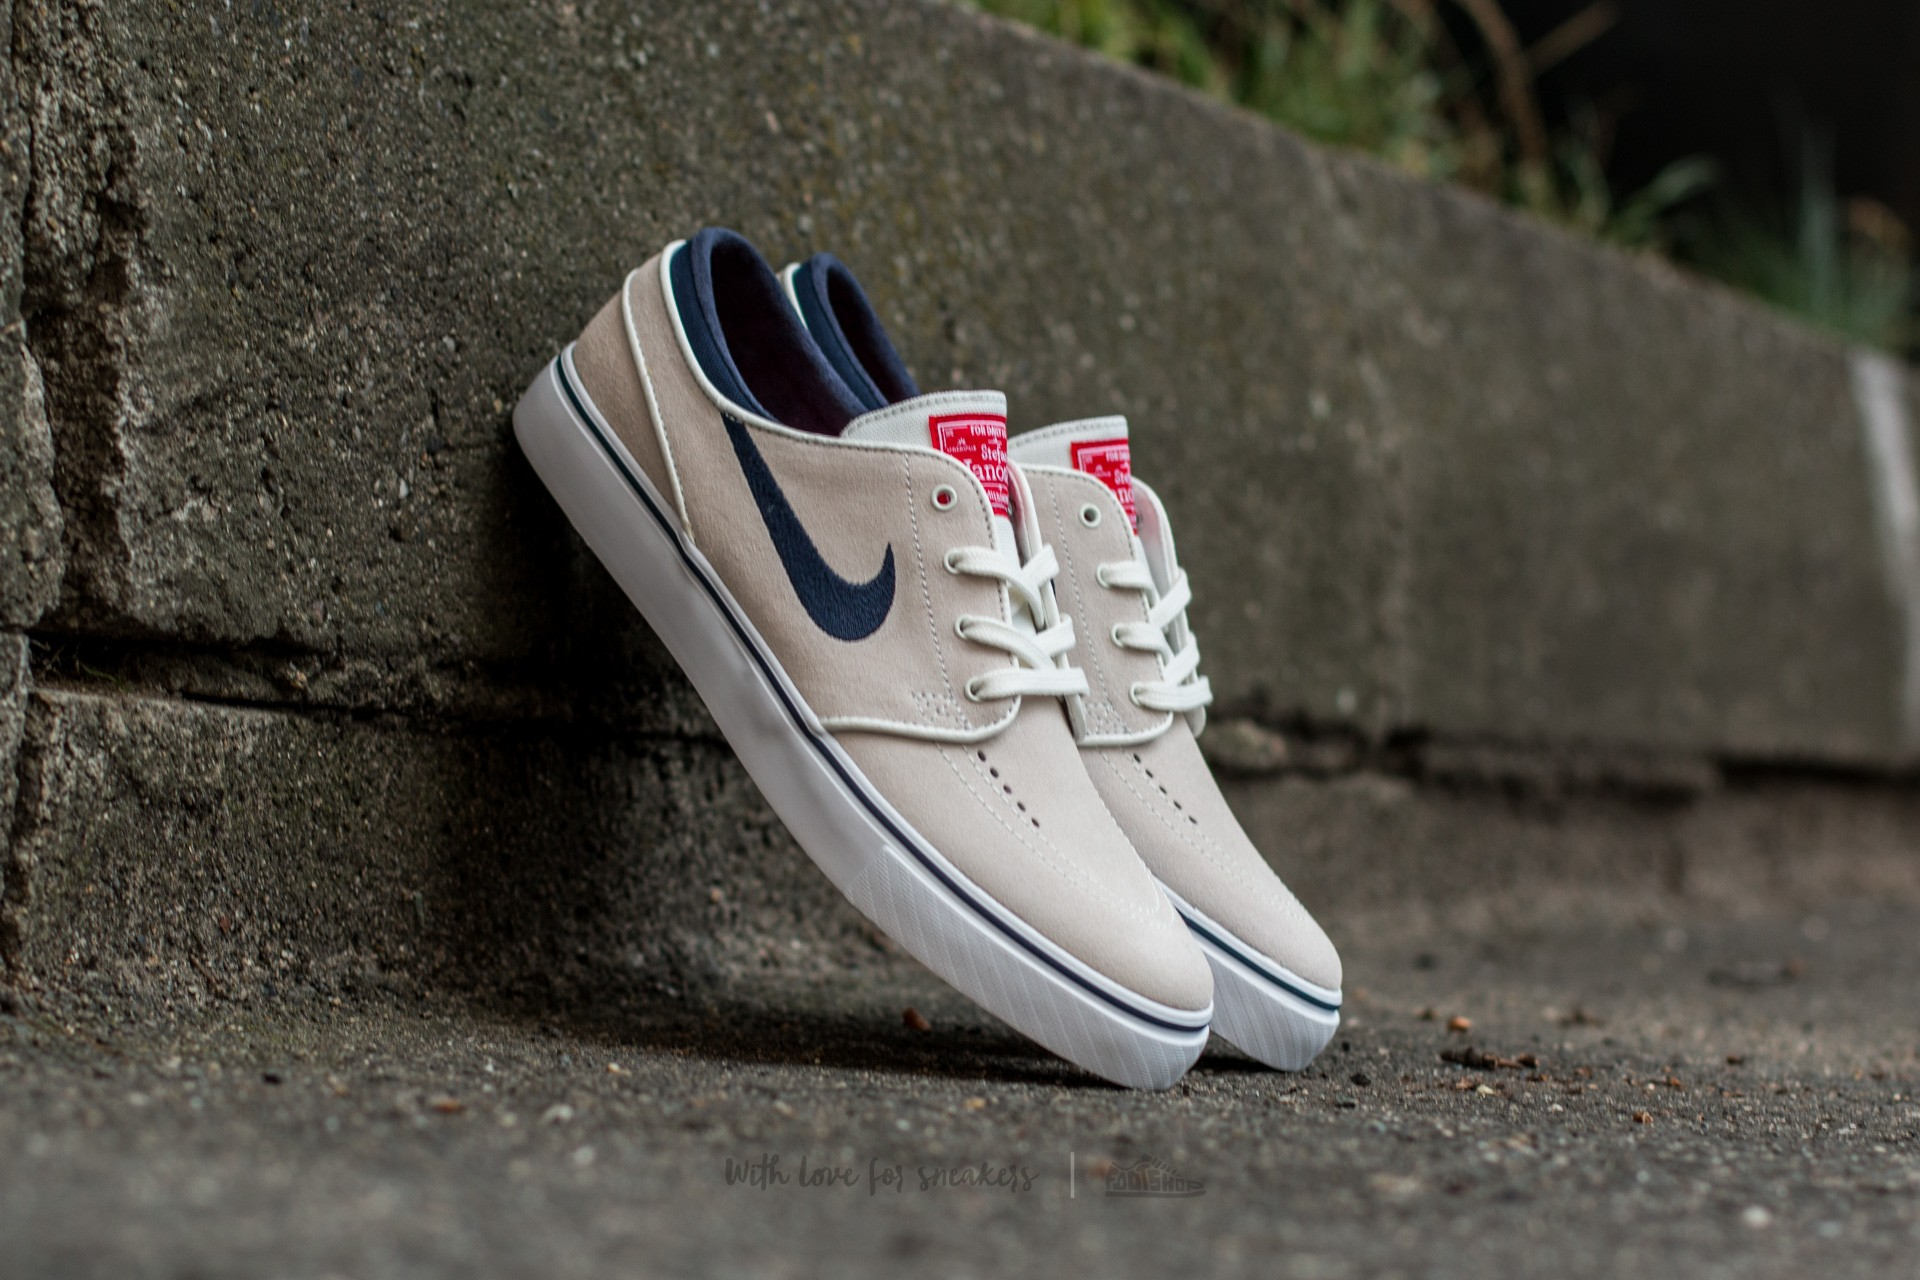 b01f62f41a 61.48 103.21 1ecf9 2f919; coupon code for nike zoom stefan janoski summit  white obsidian university red white 1c9d0 4f4e5